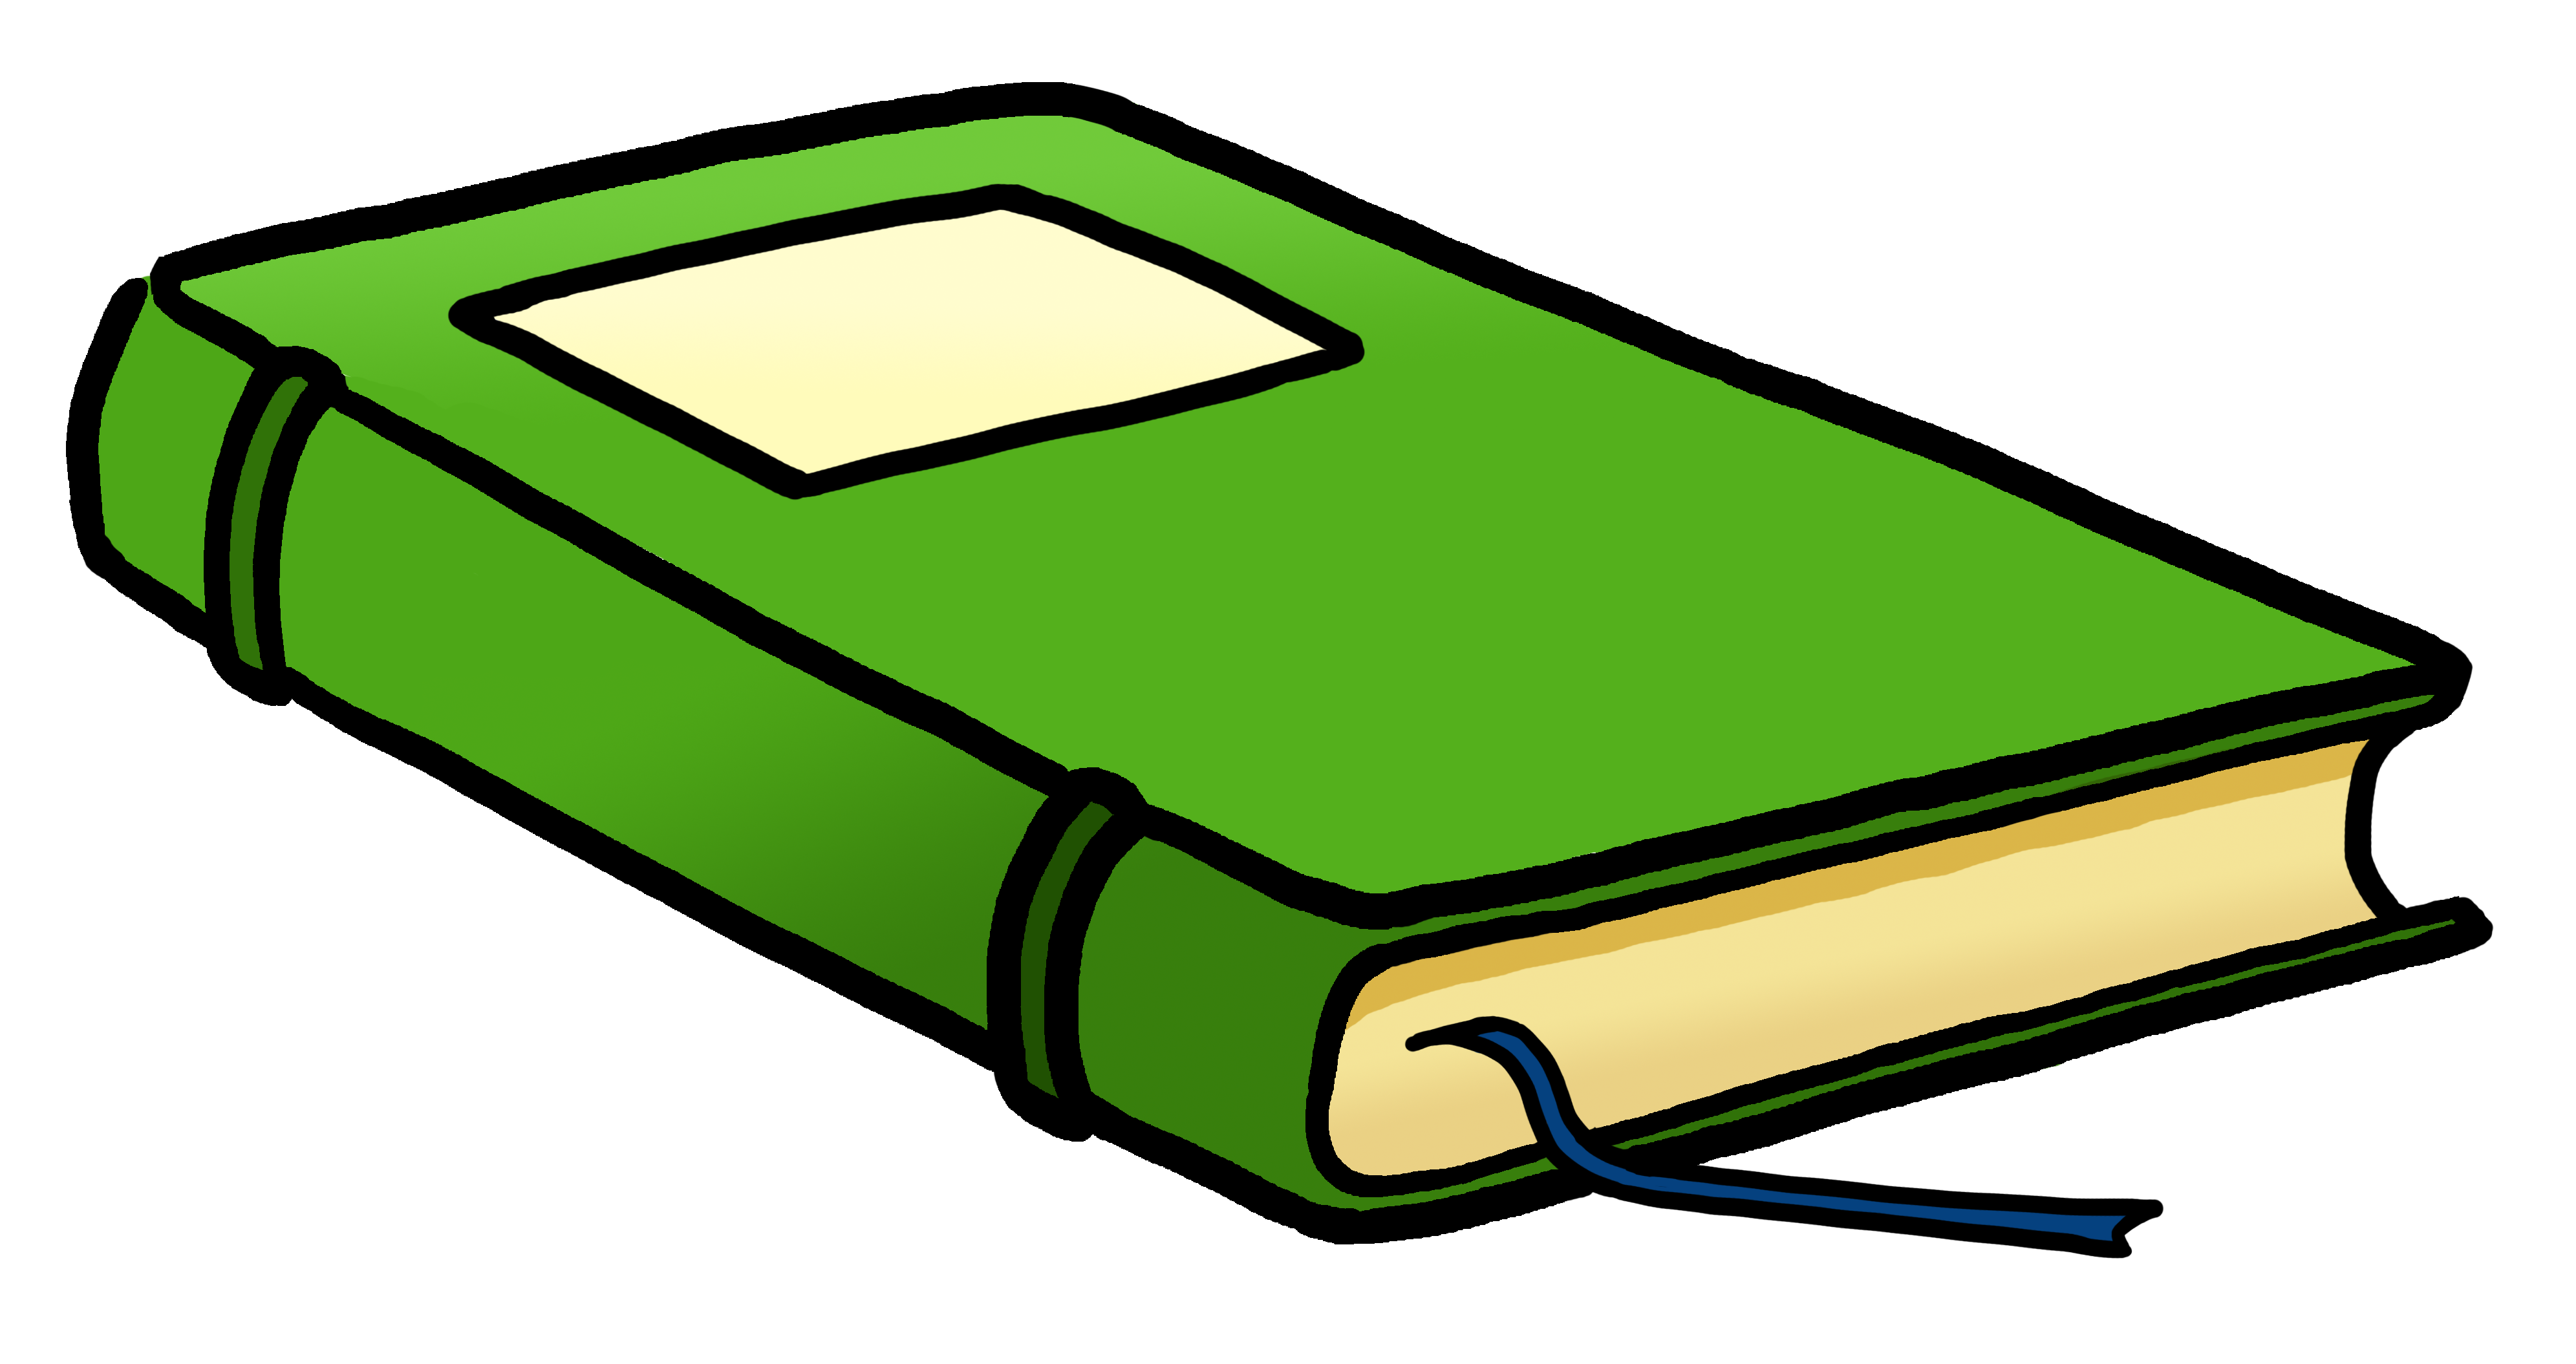 textbook clipart green